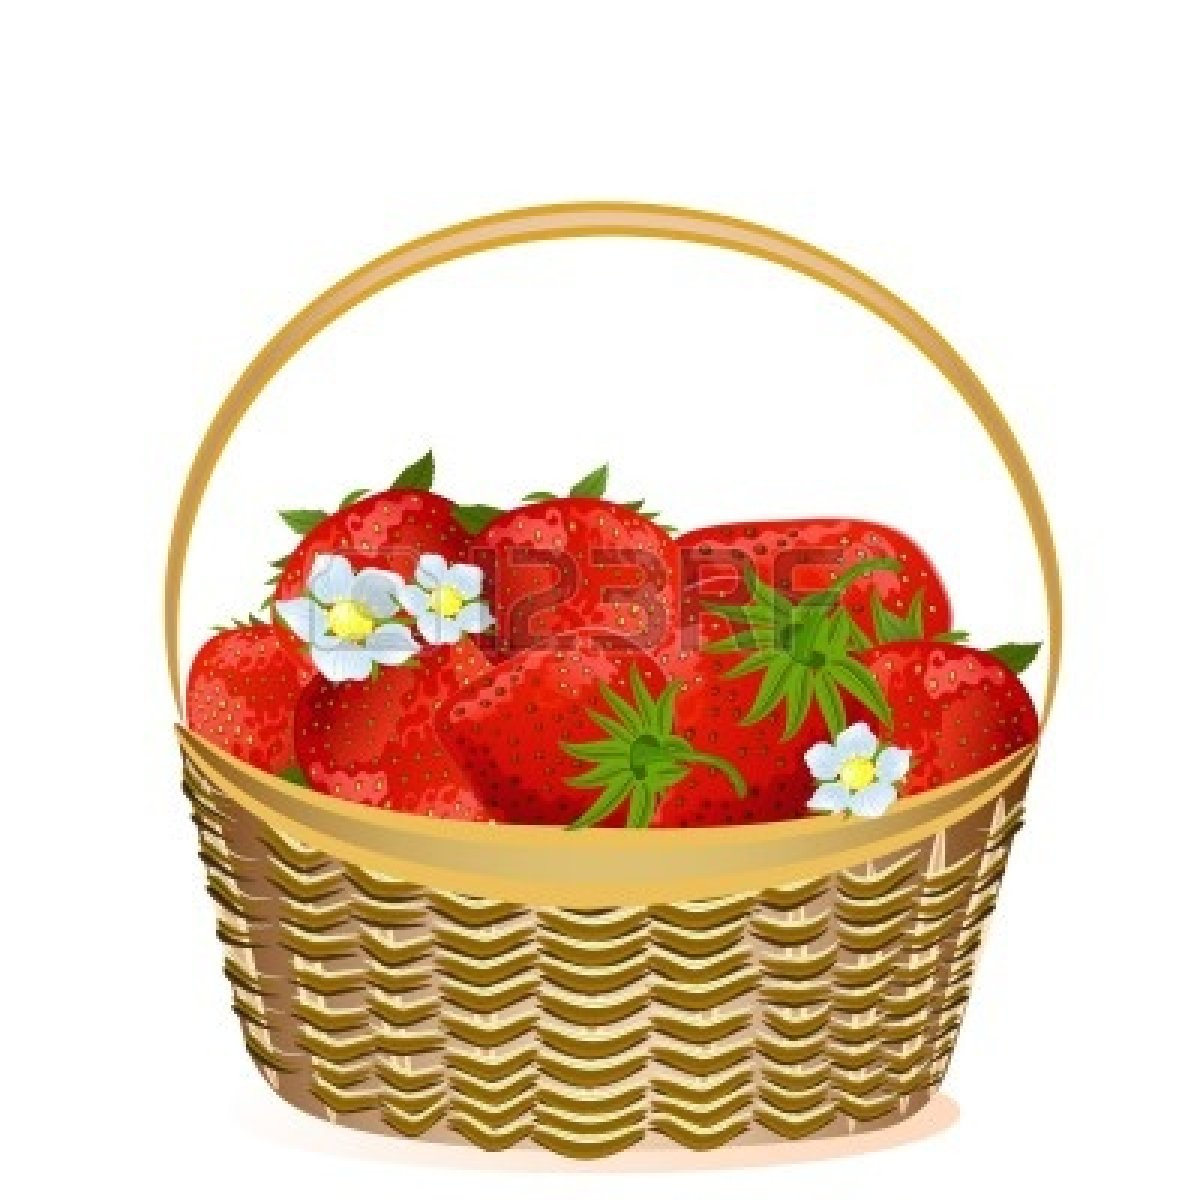 Panda free images of. Berry clipart berry basket